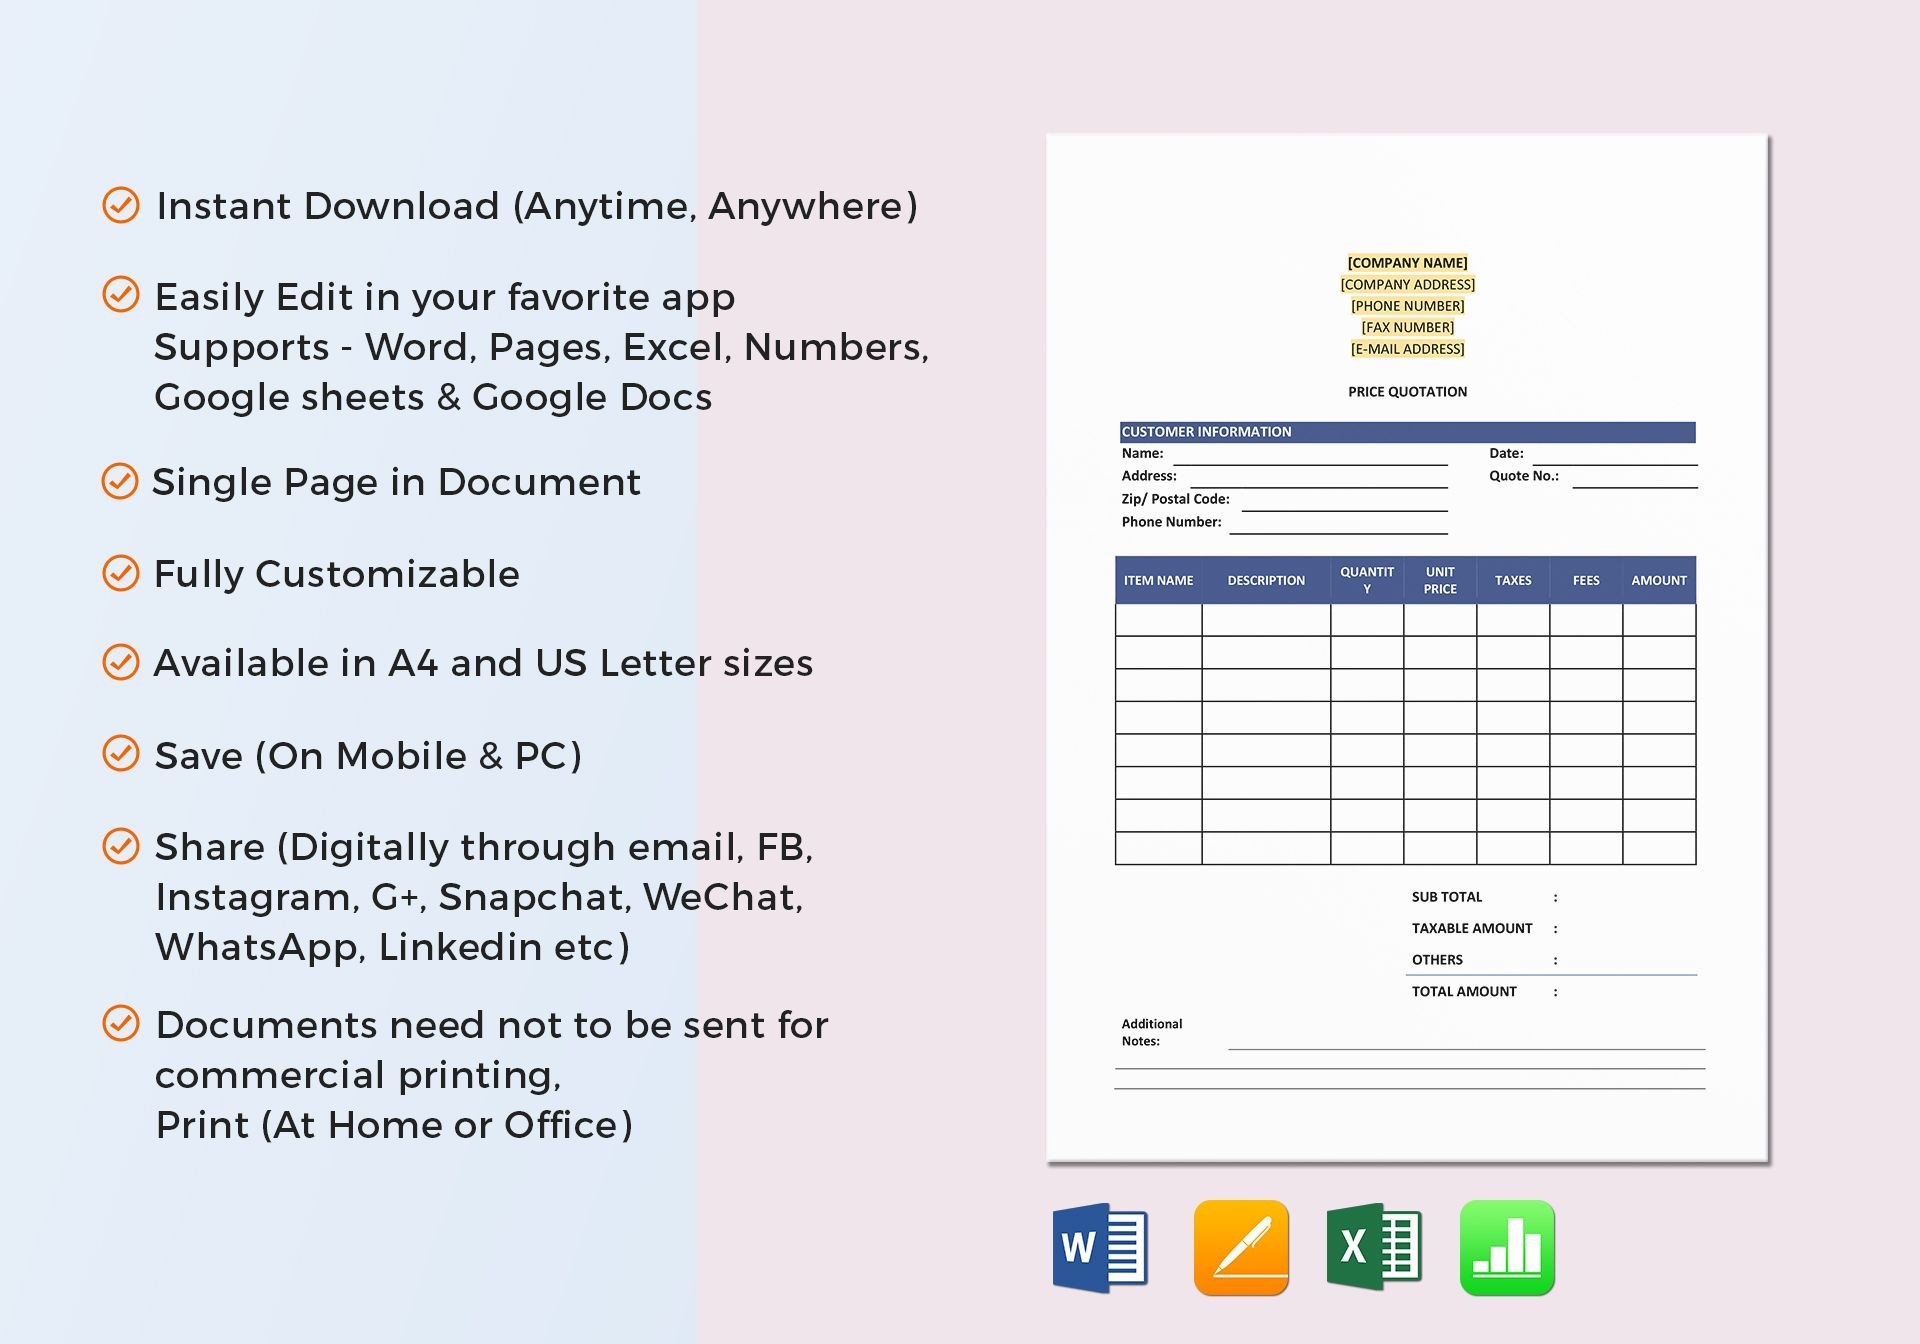 Purchase order Template Google Docs Purchase order Template In Word Excel Google Docs Apple